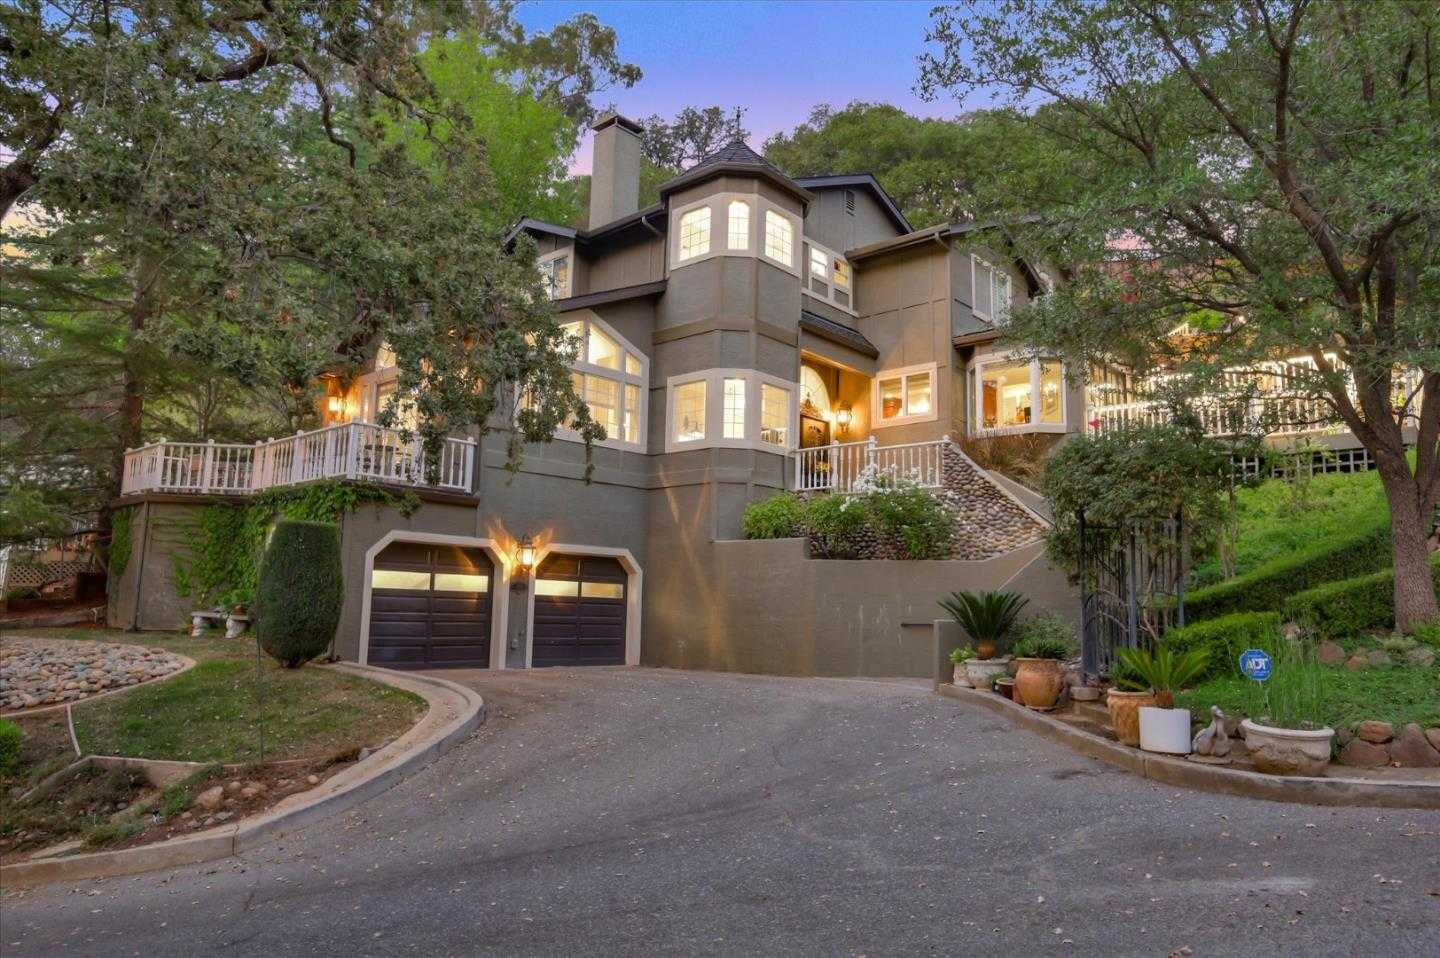 $2,989,000 - 4Br/3Ba -  for Sale in Los Gatos